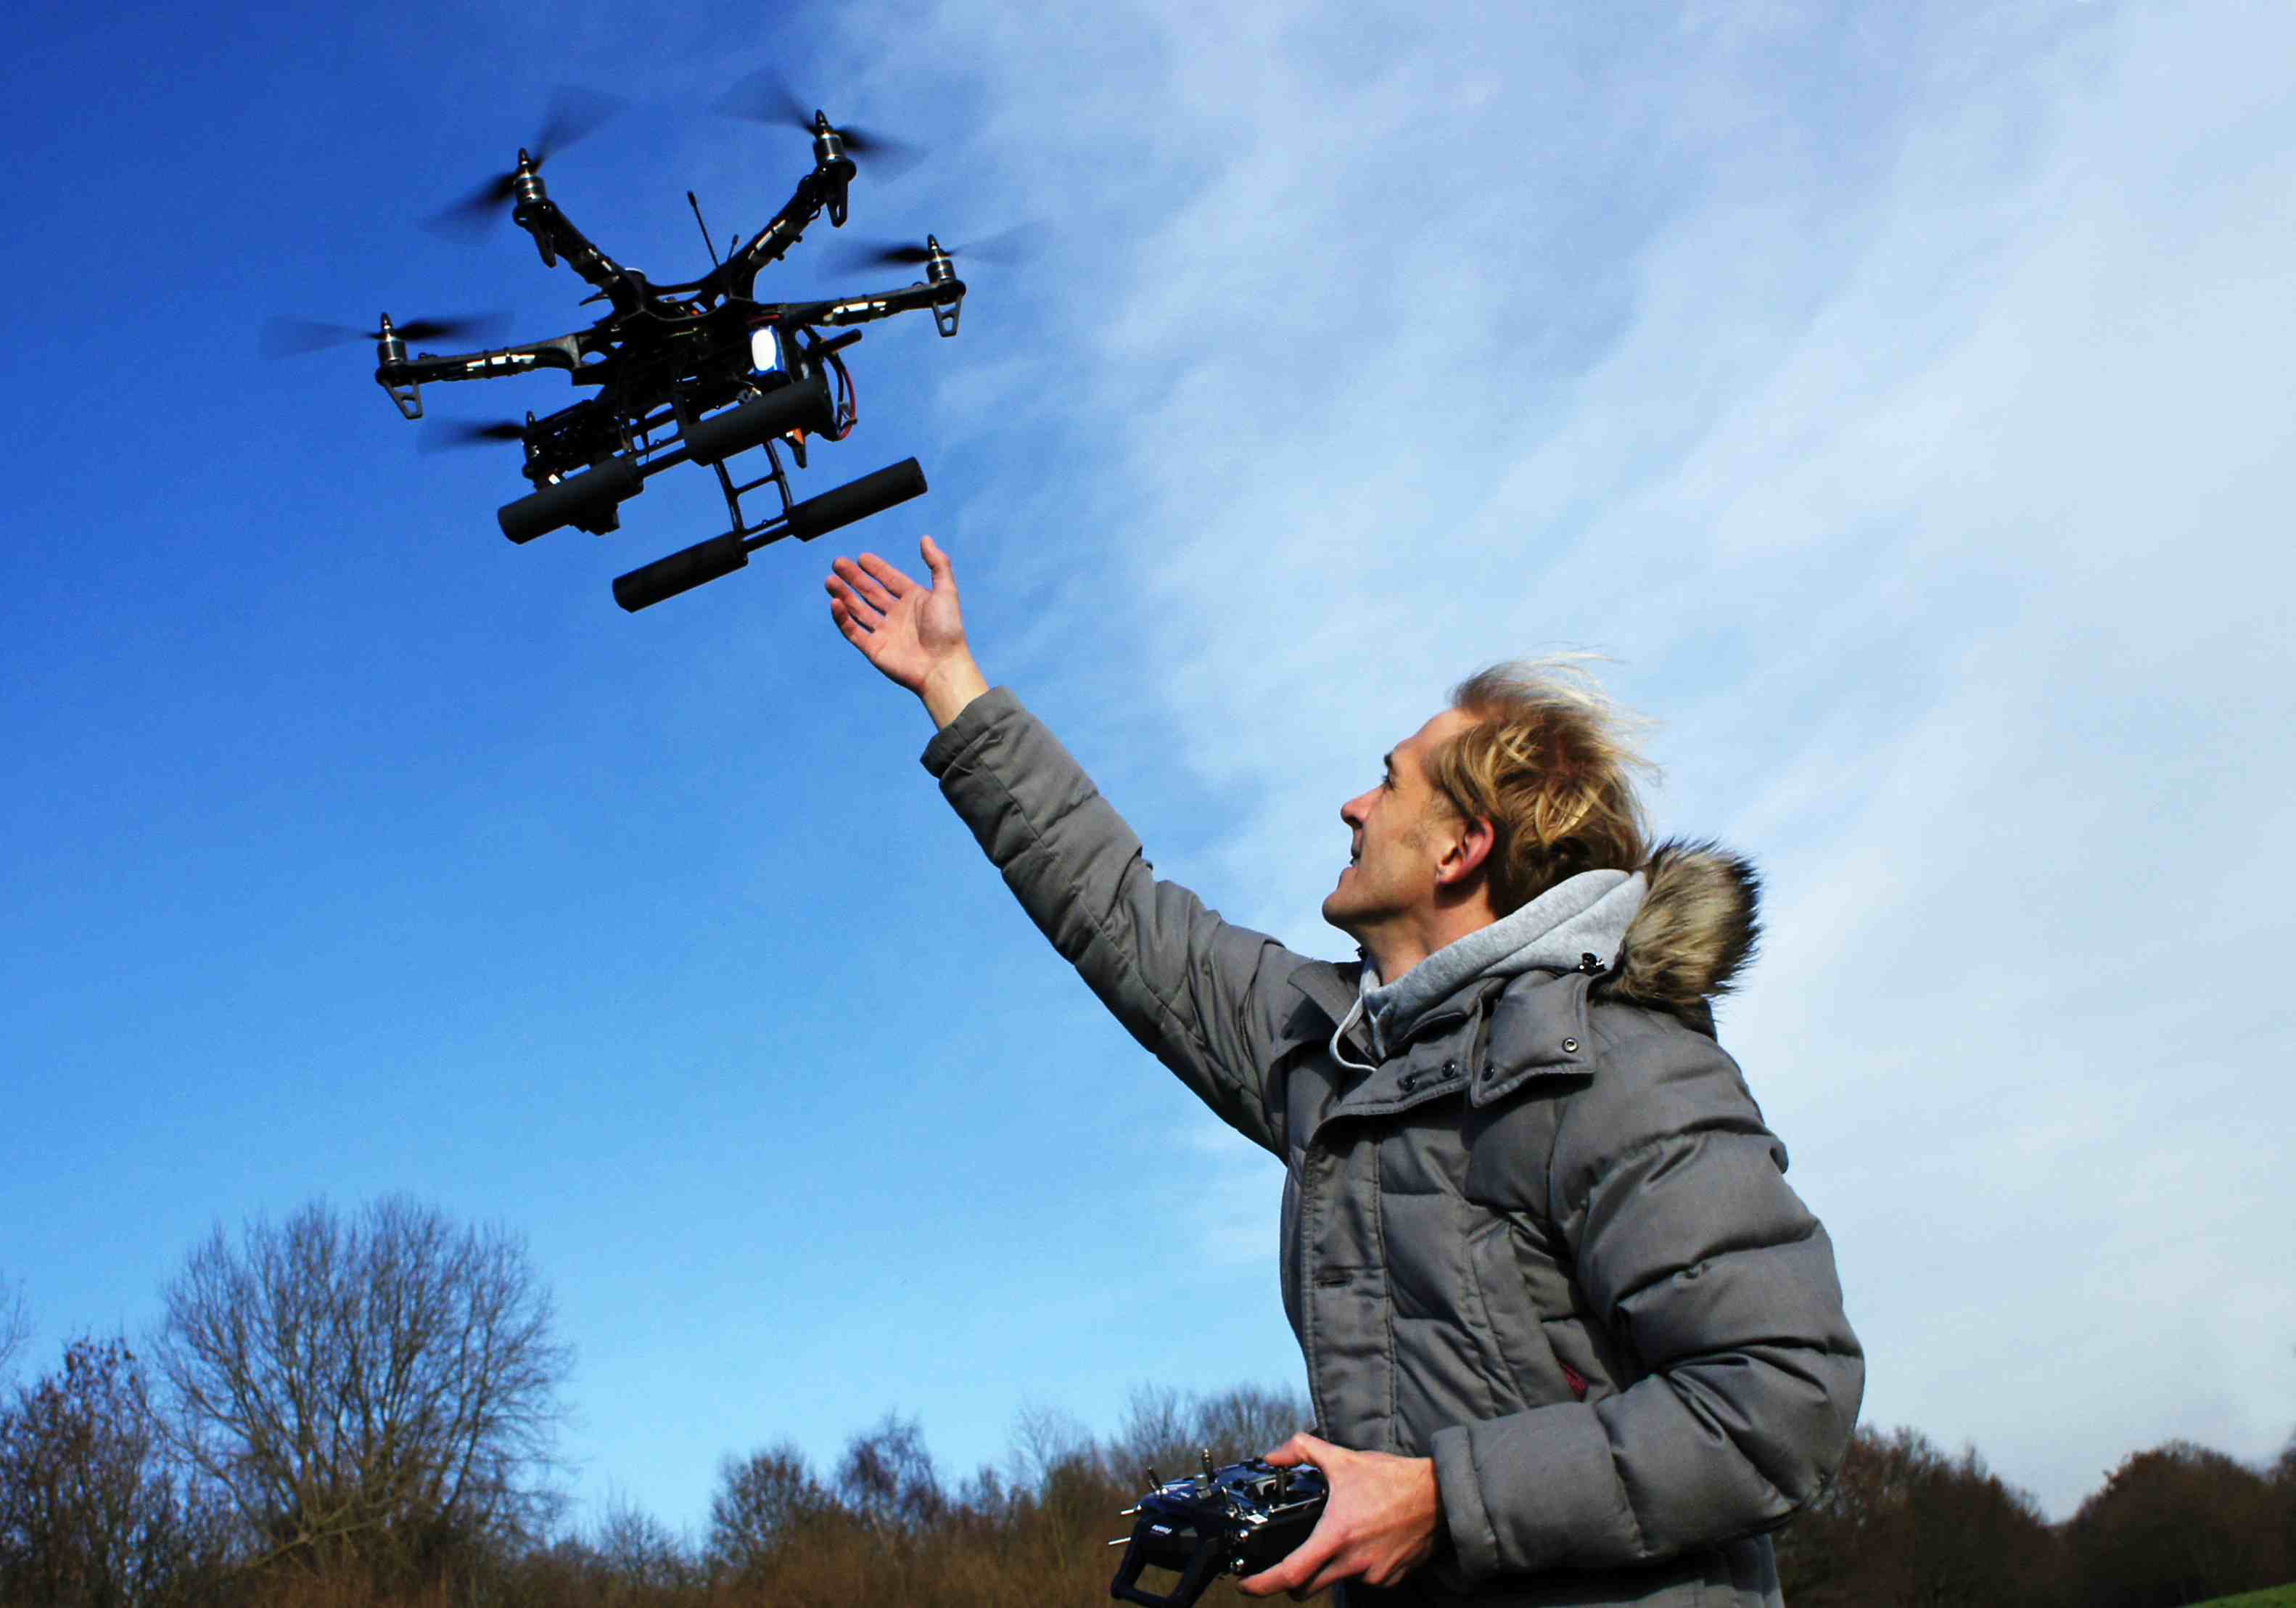 Man with a drone